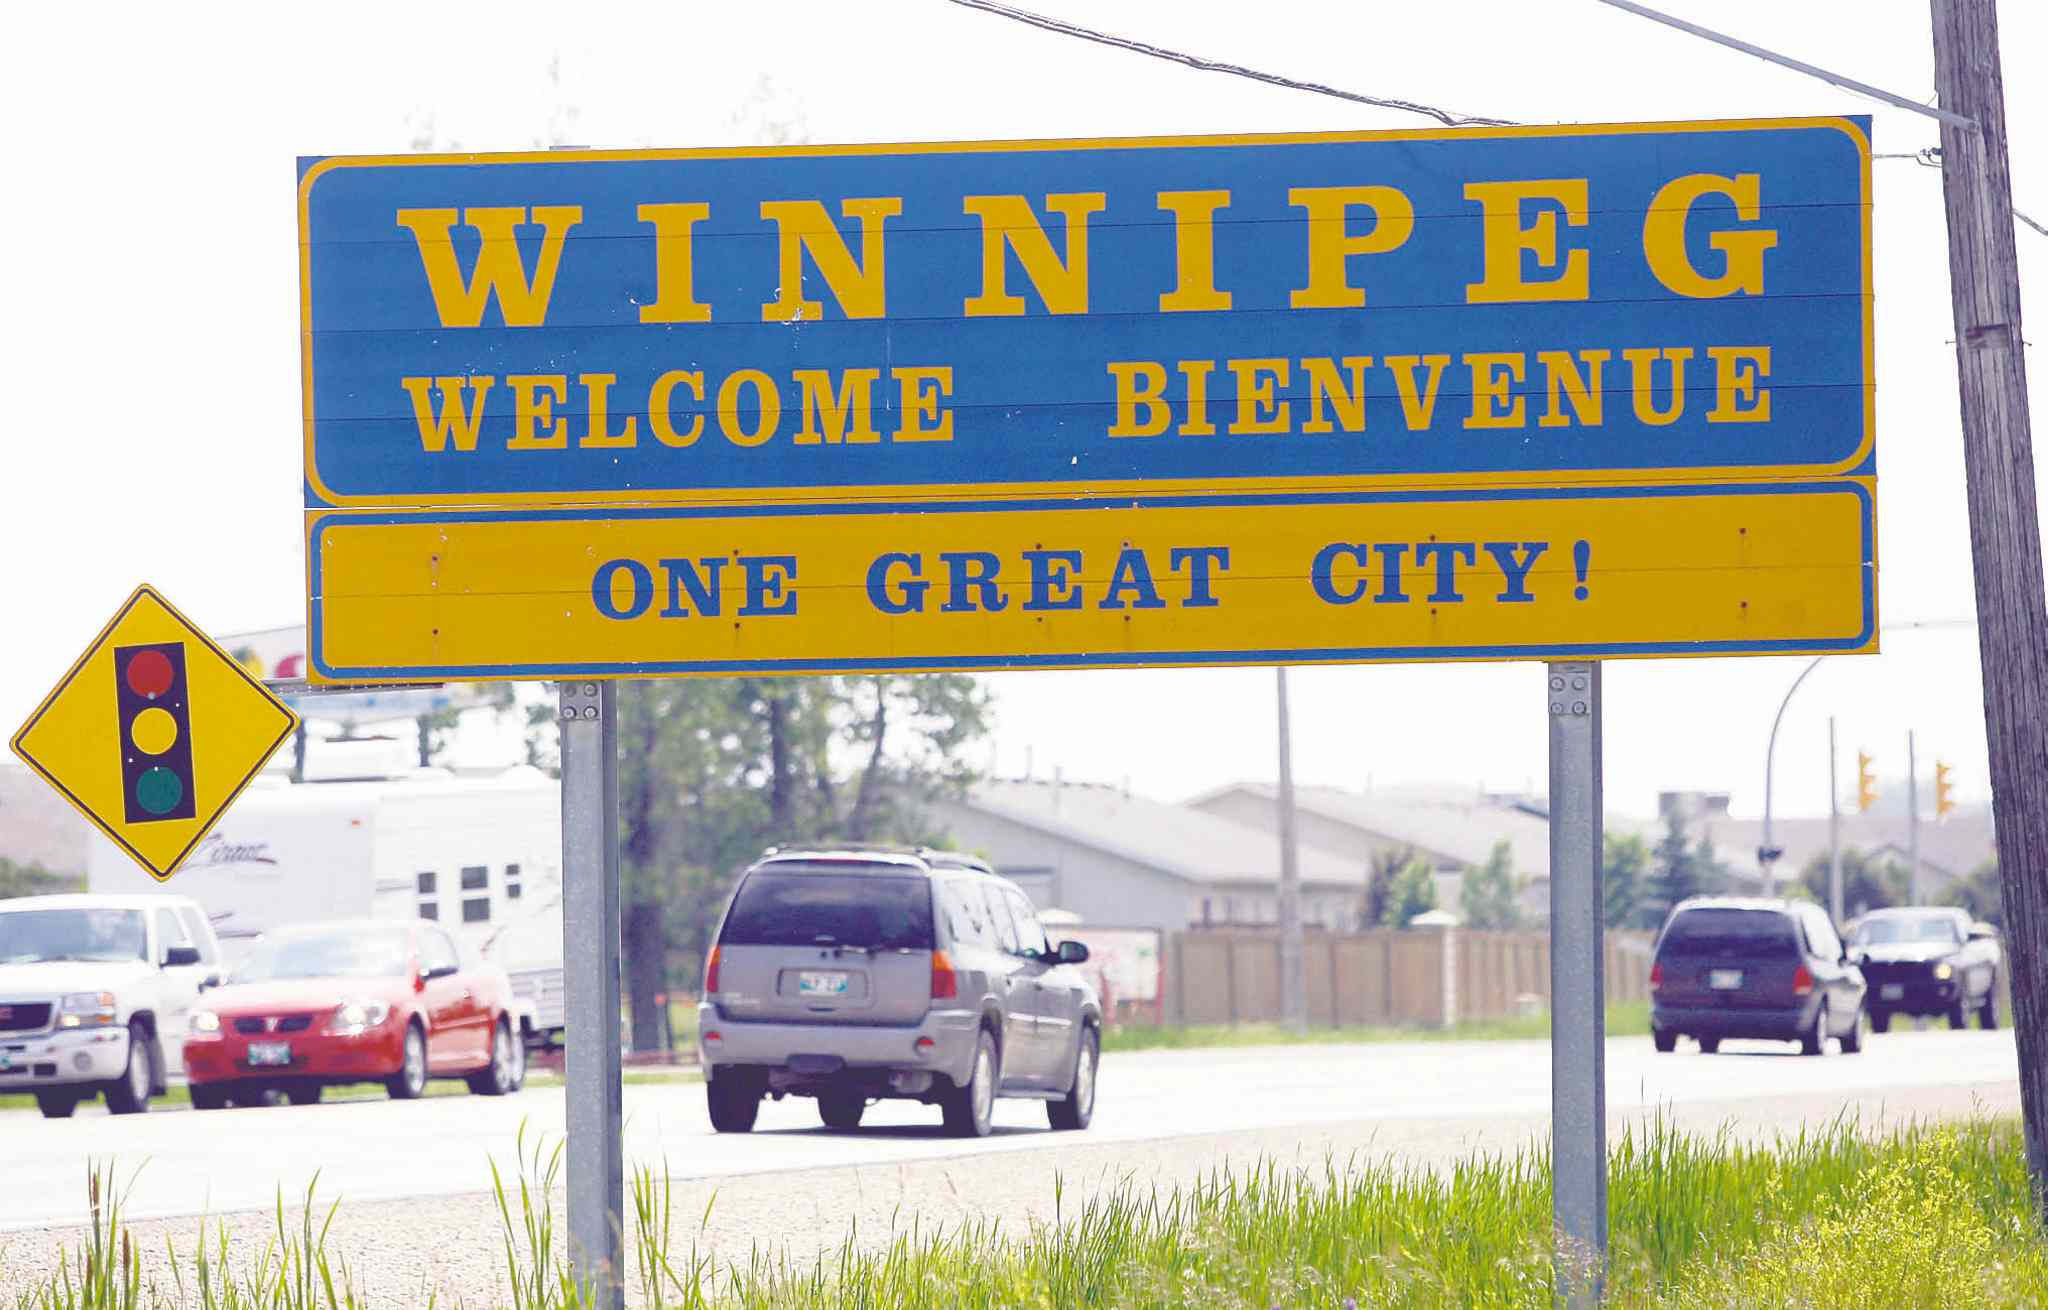 MIKE APORIUS / WINNIPEG FREE PRESS filesInstead of making the most of living in a great city, Winnipeg�s haters prefer to wallow in their own misery.